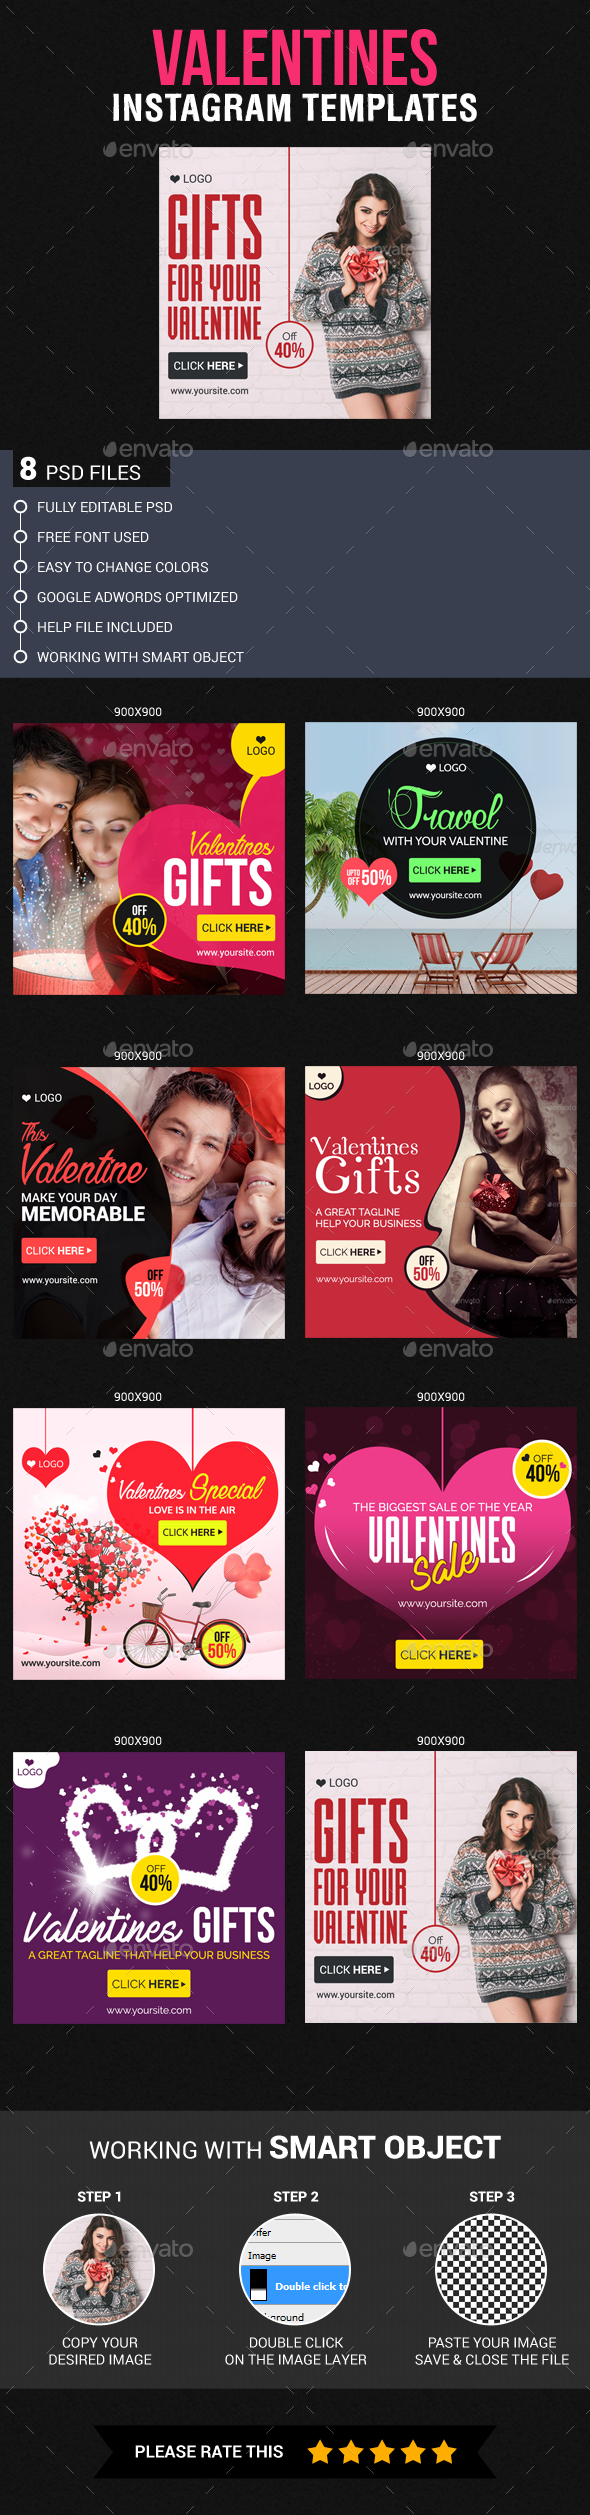 Valentines Instagram Templates - Banners & Ads Web Elements